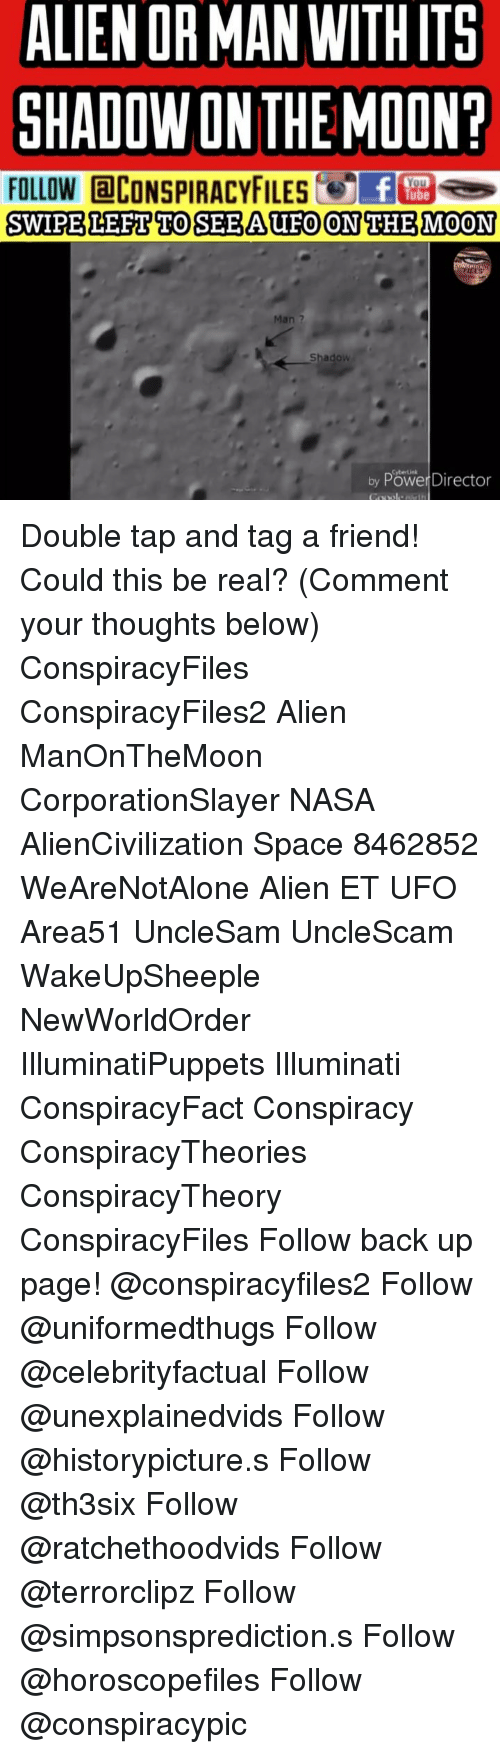 illuminati: ALIEN OR MAN WITHITS  GHADOWONTHE MOON?  FOLLOW @CONSPIRACYFILESC E  SWIPELEFT TOSEEAUFO ON THEMOON  Man ?  Cybertink  by Power Director Double tap and tag a friend! Could this be real? (Comment your thoughts below) ConspiracyFiles ConspiracyFiles2 Alien ManOnTheMoon CorporationSlayer NASA AlienCivilization Space 8462852 WeAreNotAlone Alien ET UFO Area51 UncleSam UncleScam WakeUpSheeple NewWorldOrder IlluminatiPuppets Illuminati ConspiracyFact Conspiracy ConspiracyTheories ConspiracyTheory ConspiracyFiles Follow back up page! @conspiracyfiles2 Follow @uniformedthugs Follow @celebrityfactual Follow @unexplainedvids Follow @historypicture.s Follow @th3six Follow @ratchethoodvids Follow @terrorclipz Follow @simpsonsprediction.s Follow @horoscopefiles Follow @conspiracypic